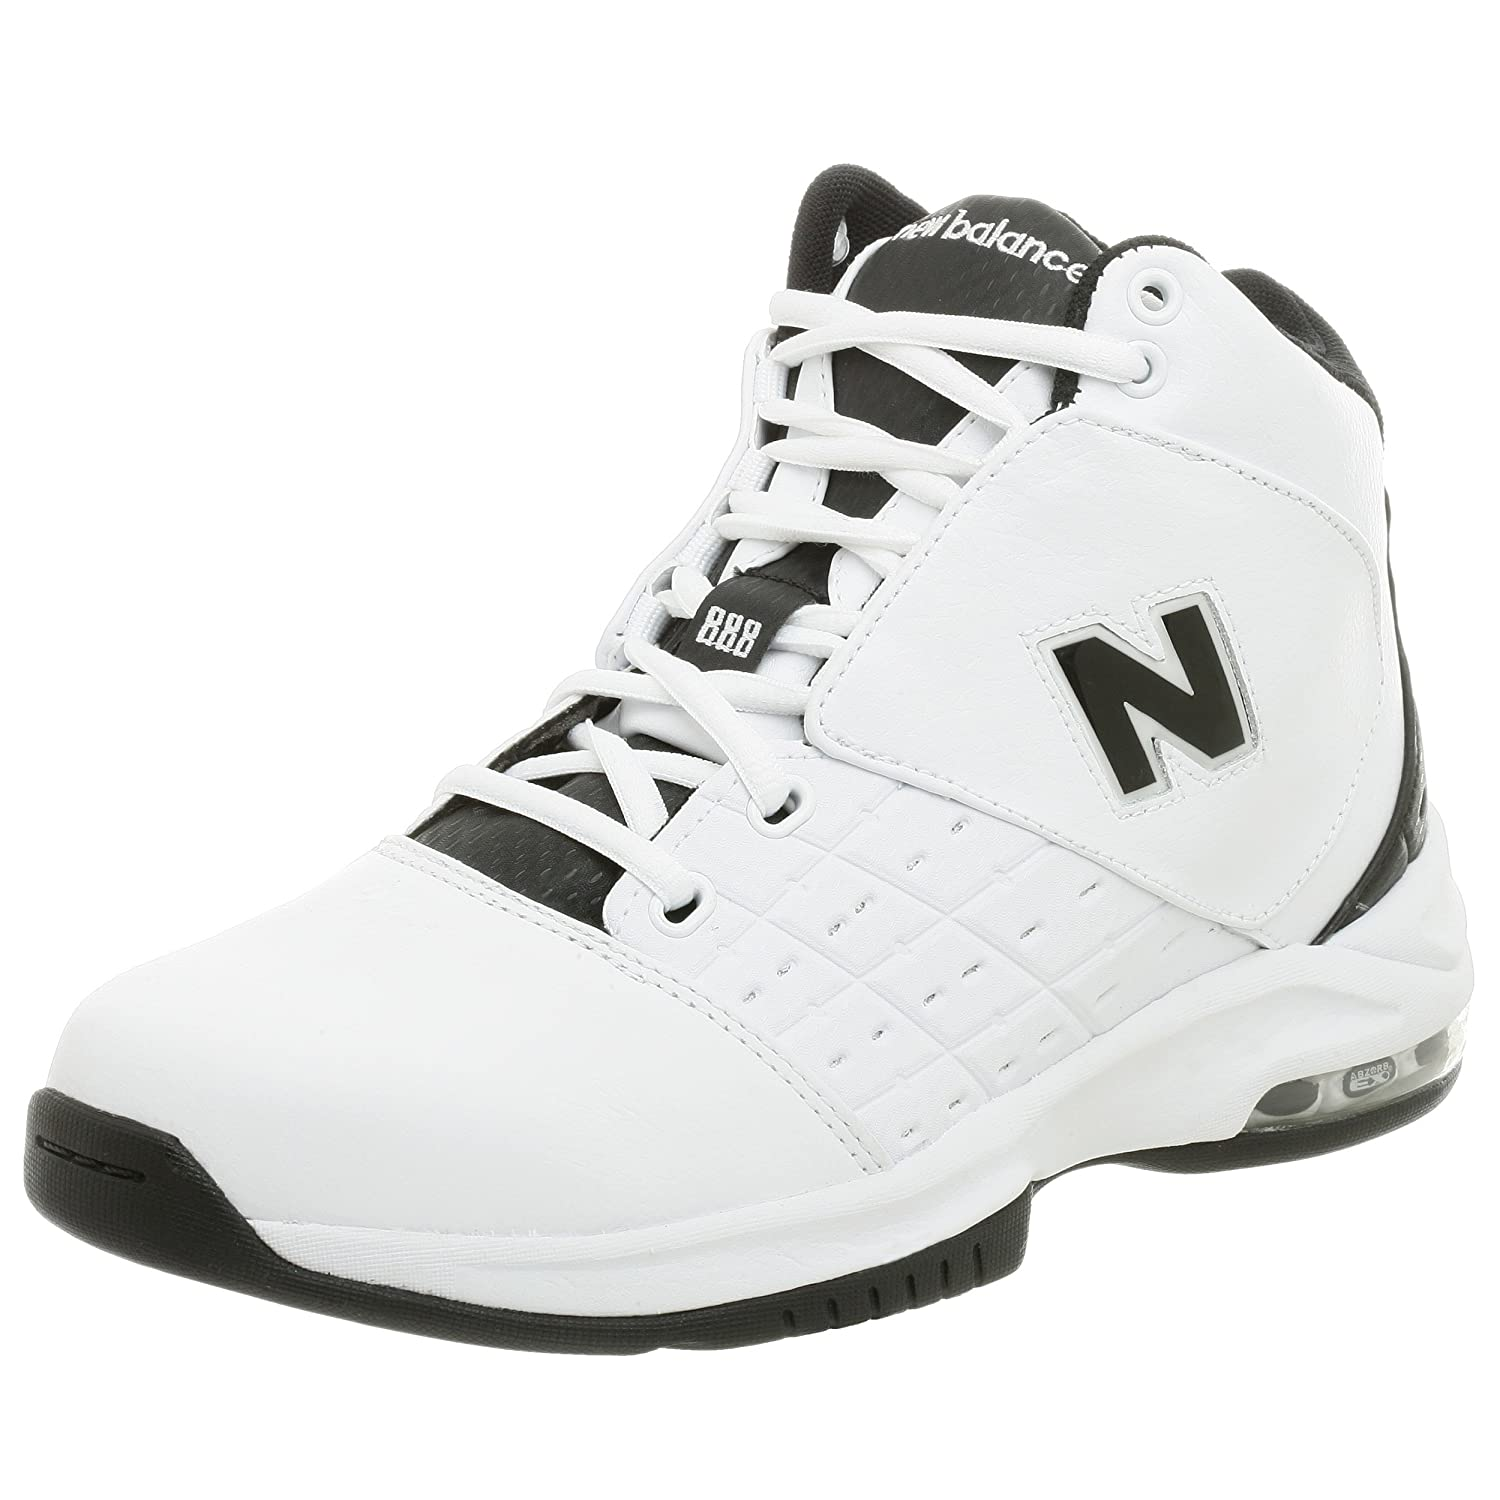 2ae41eddc118a Nike Basketball New Balance Shoes On Amazon